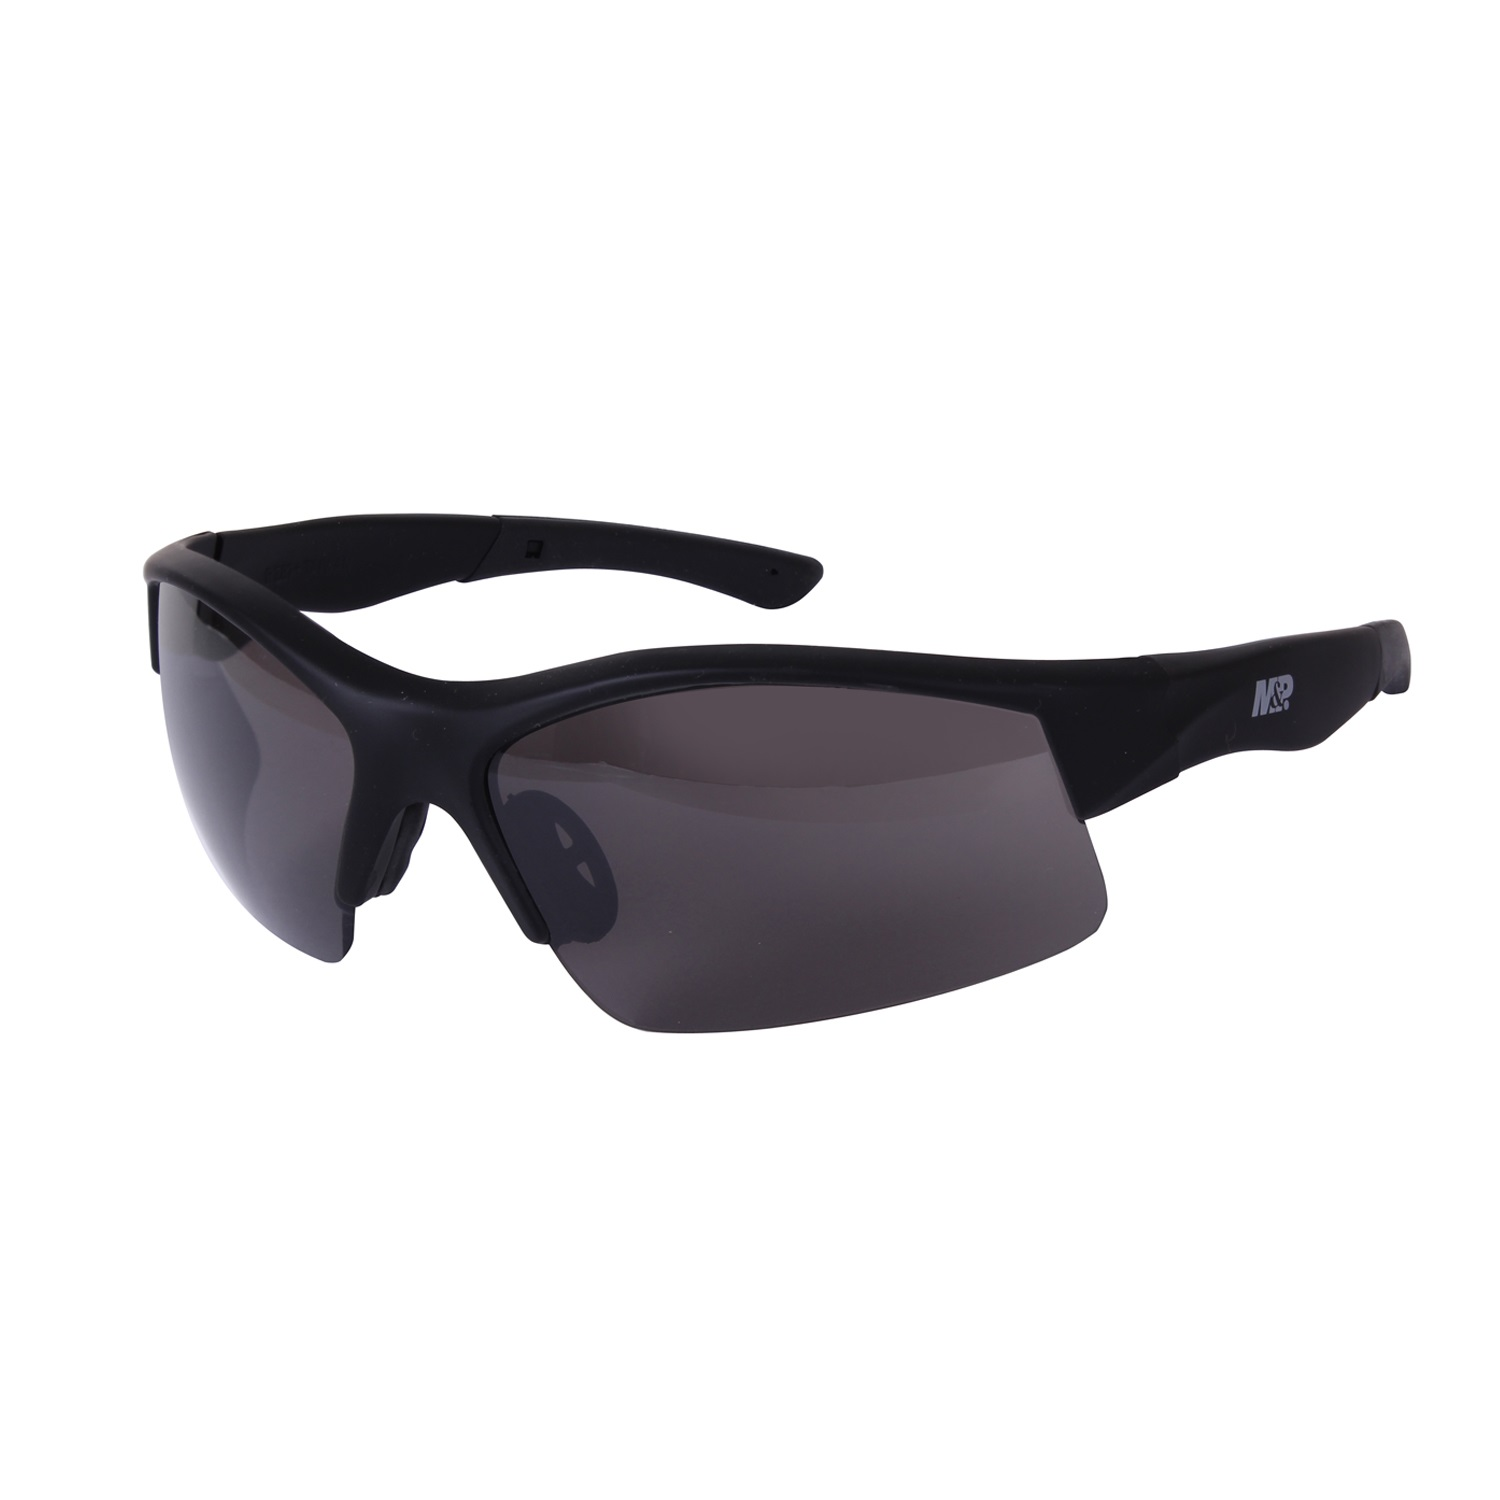 Sunglasses: Smith & Wesson MP104 Performance Eyewear